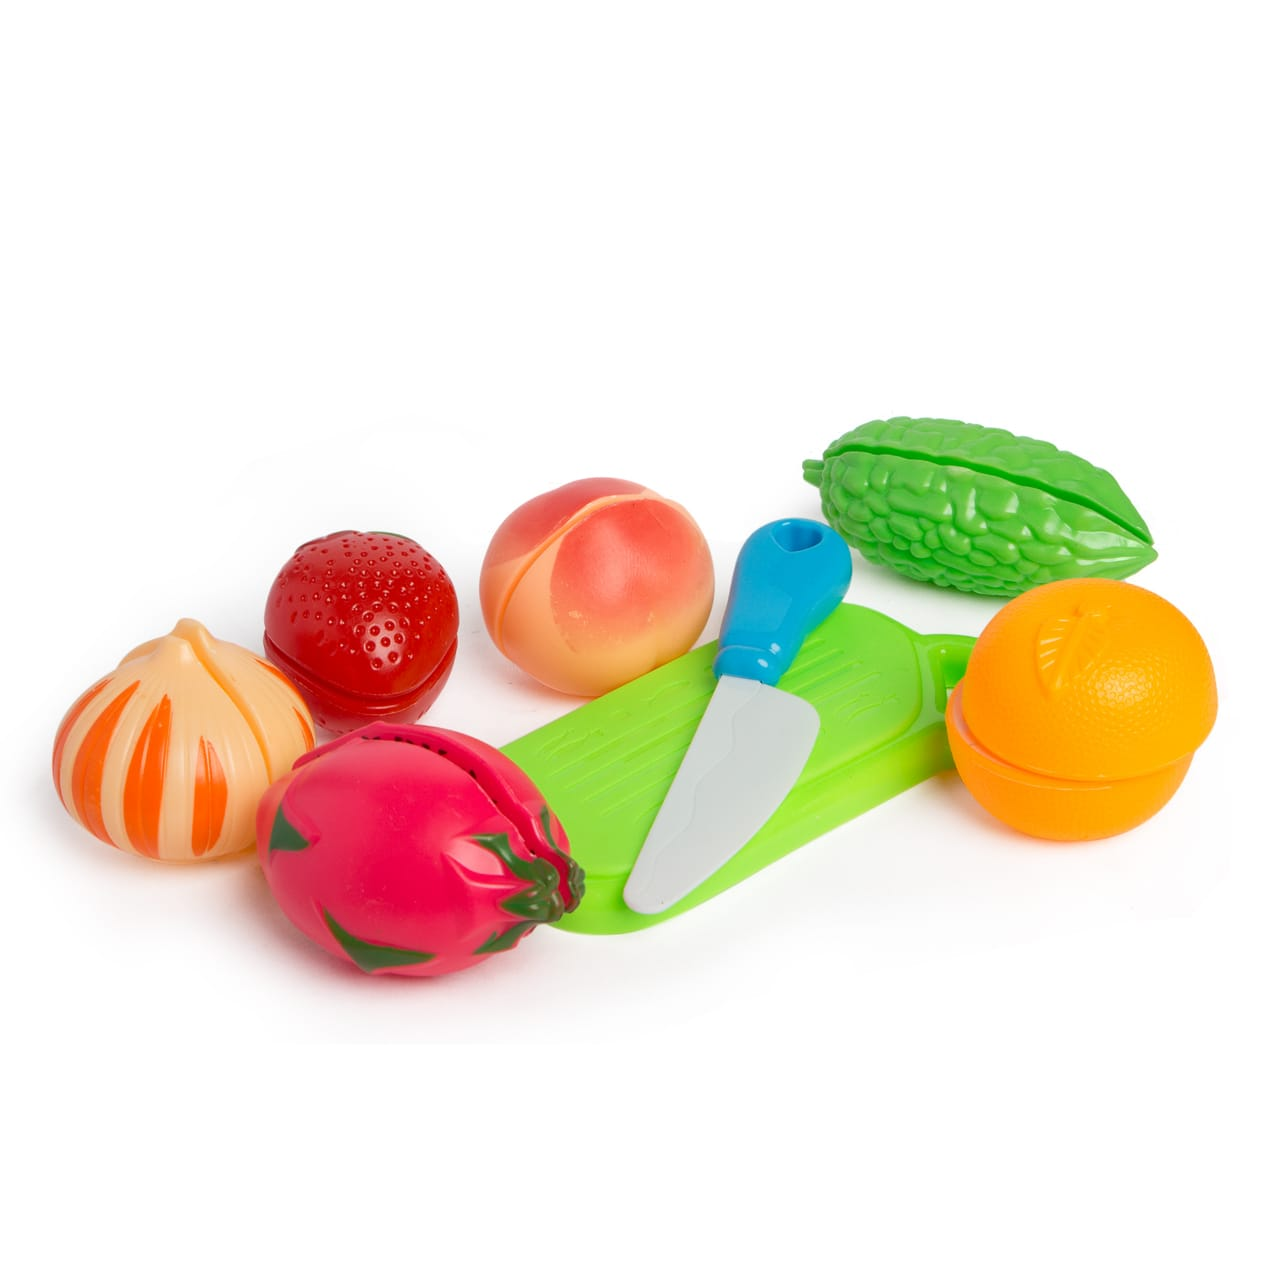 Fruit Pretend Play Toy-8 Pieces